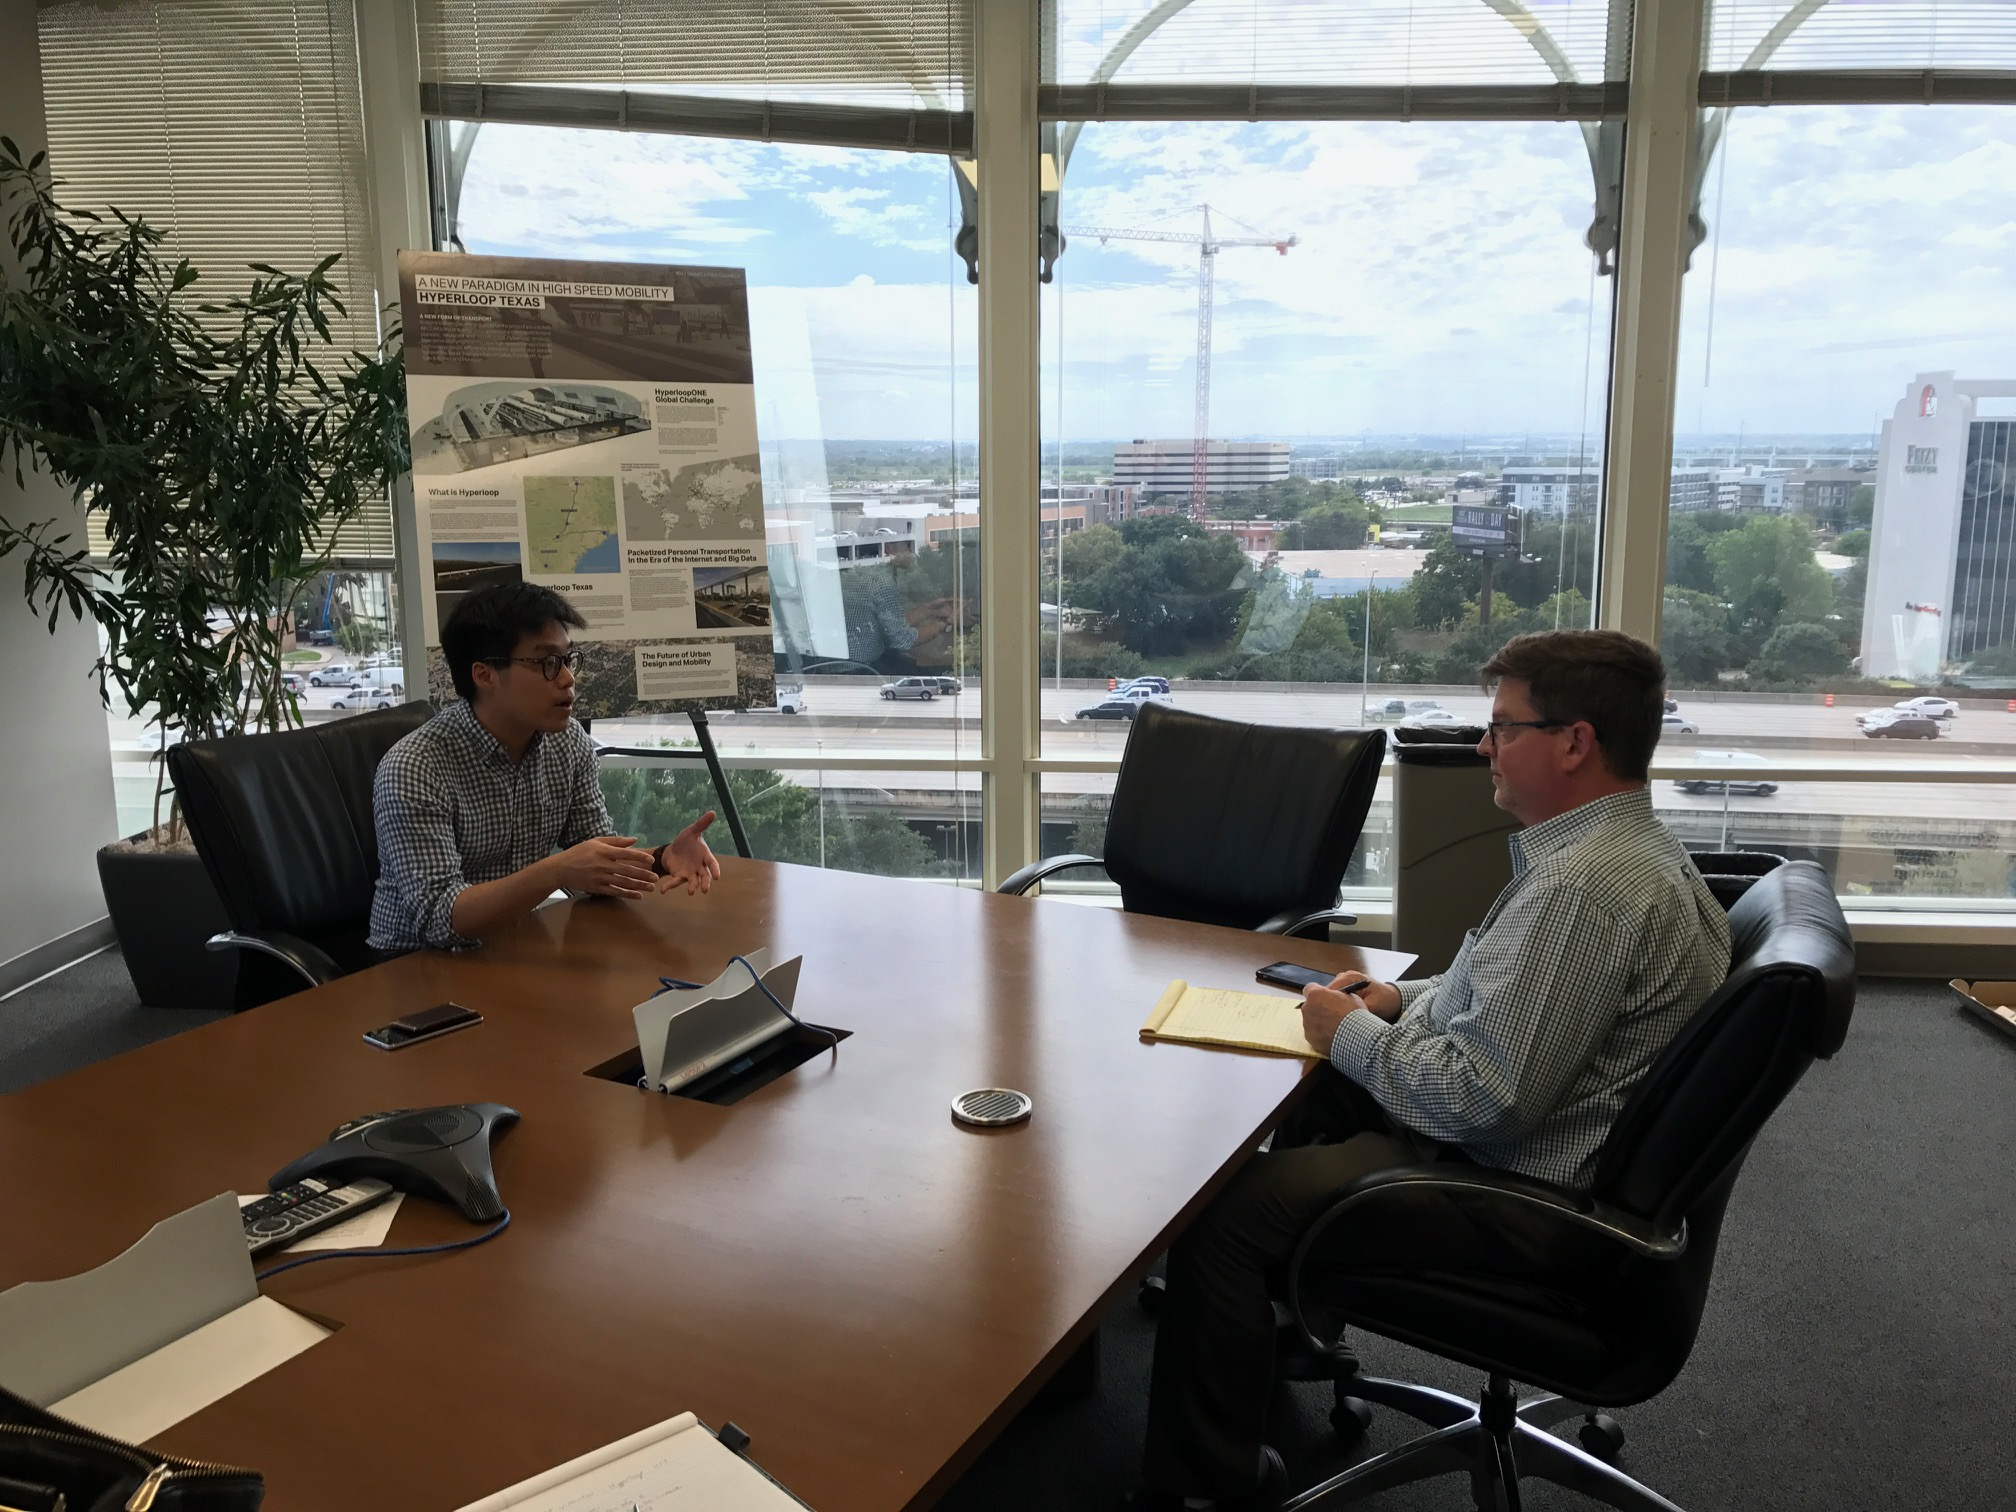 AECOM's Steven Duong sits with Fort Worth Star Telegram Reporter Gordon Dickson to explain the Hyperloop technology